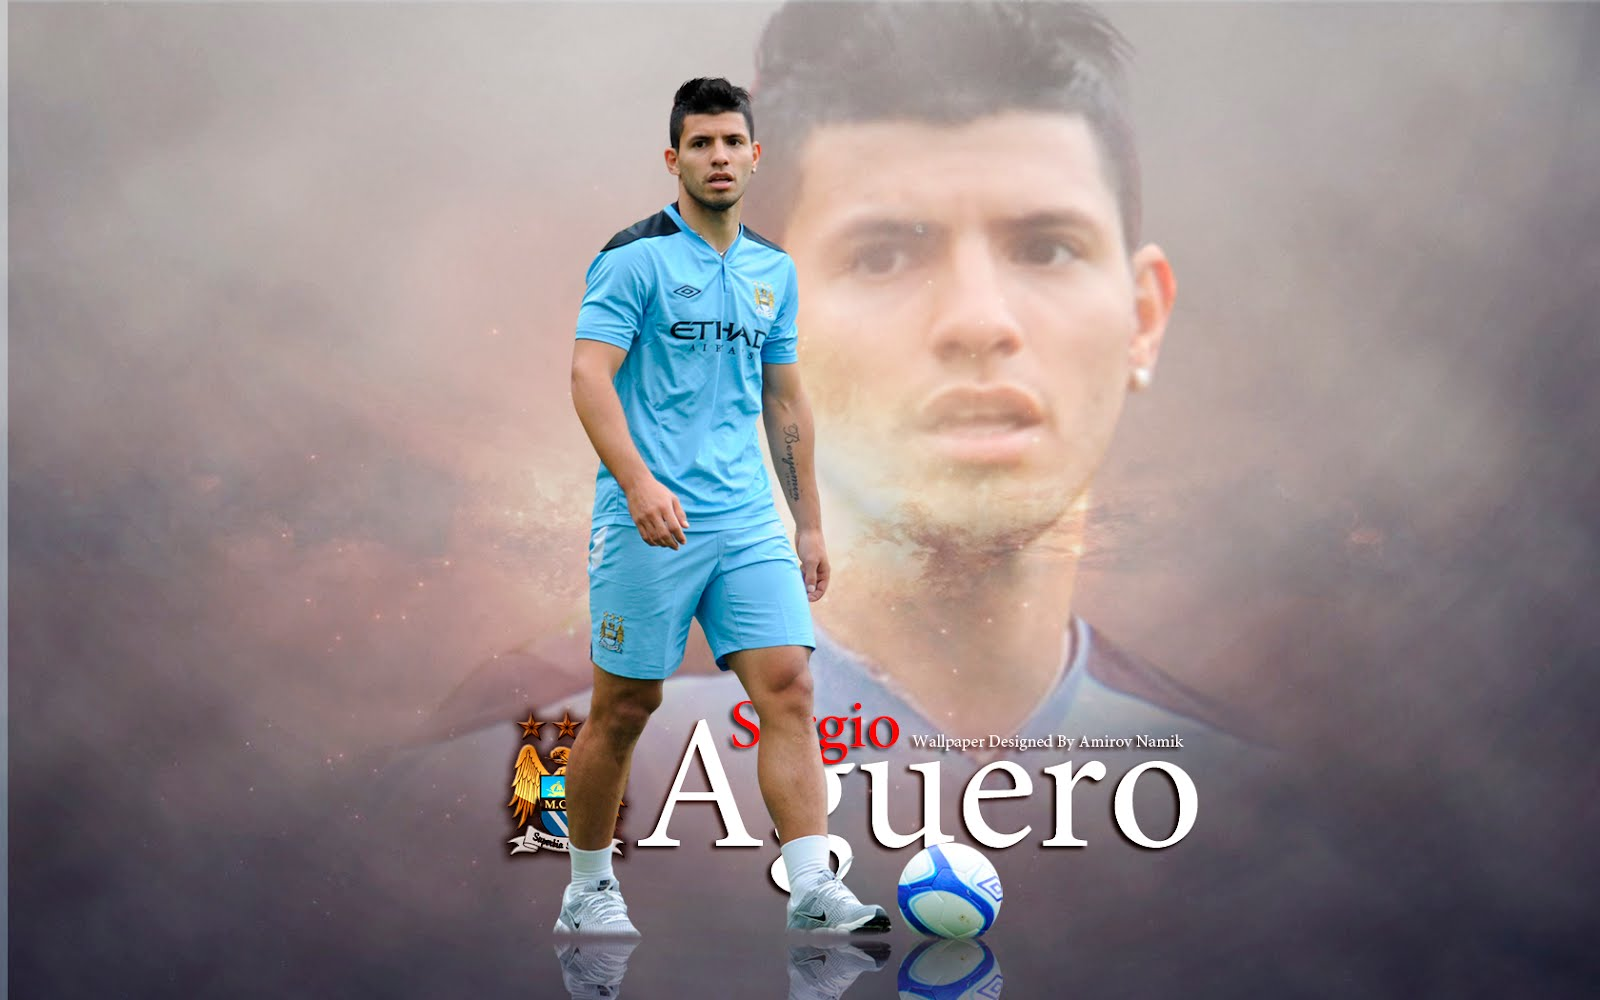 Sergio Kun Aguero Best Player Manchester City 2012 Wallpaper